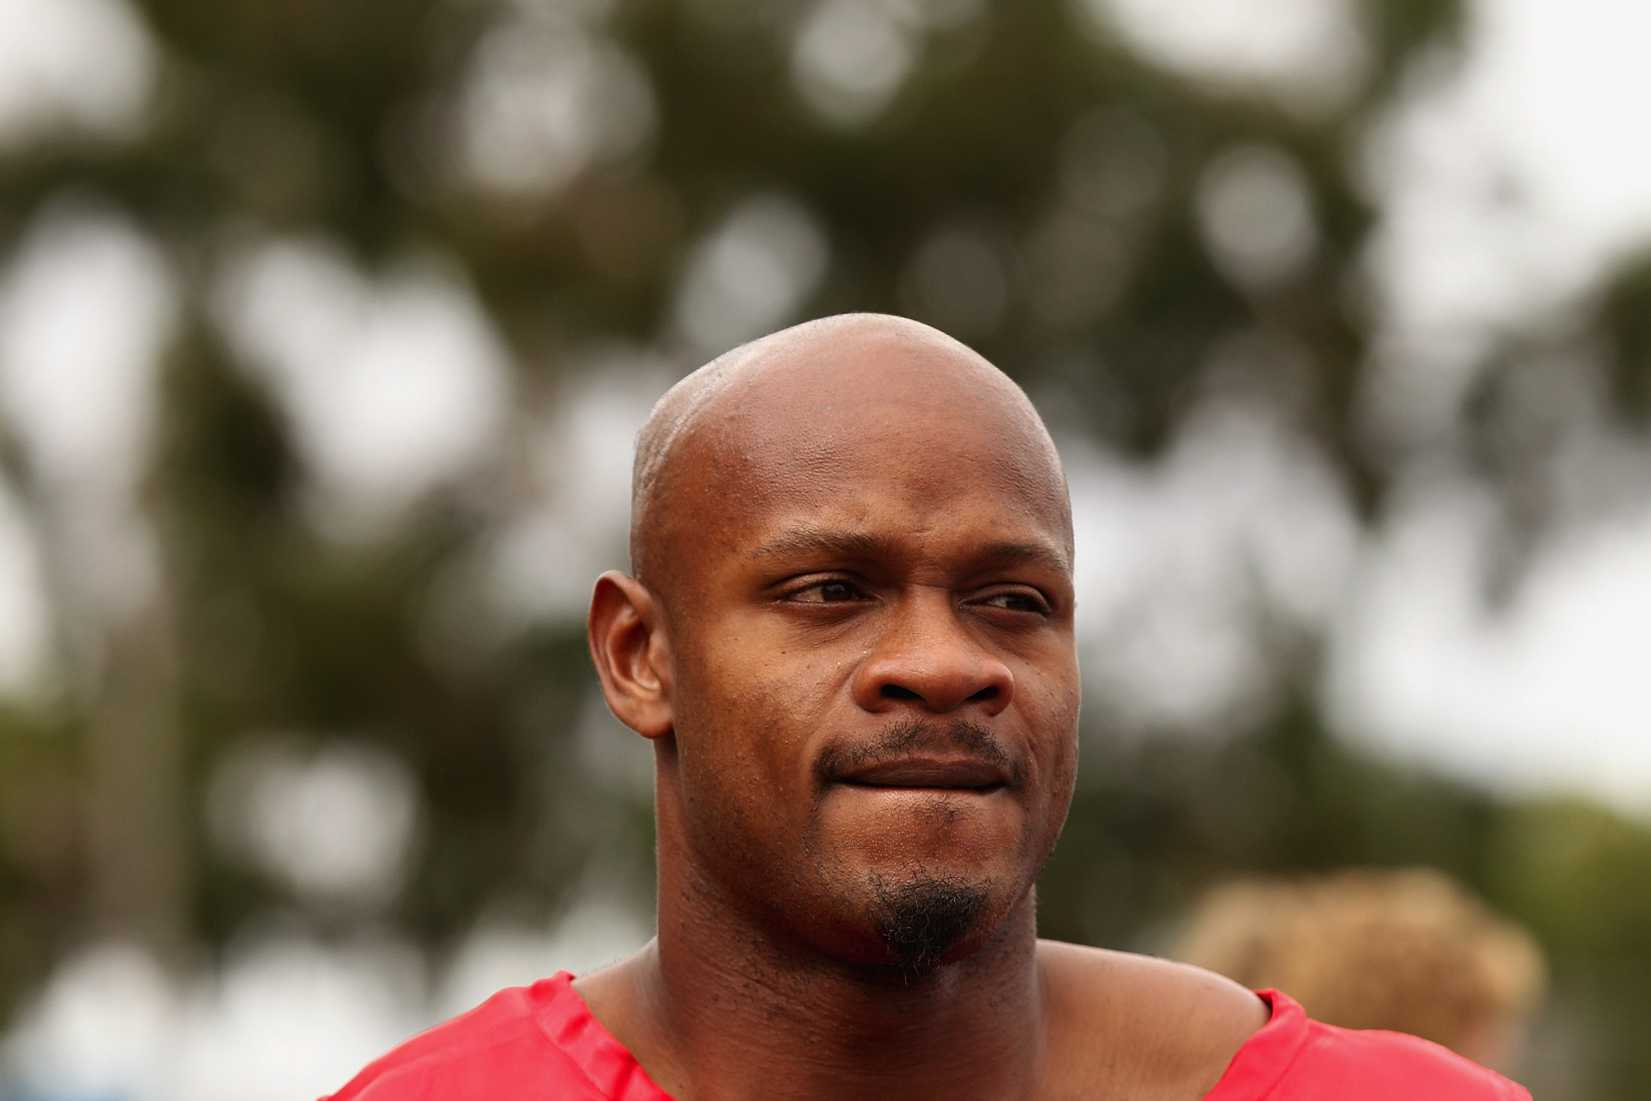 Asafa Powell of Jamaica looks on after competing in the Australia Post Stawell Gift Heat 11 during the 2013 Stawell Gift carnival at Central Park on March 30, 2013 in Stawell, Australia.